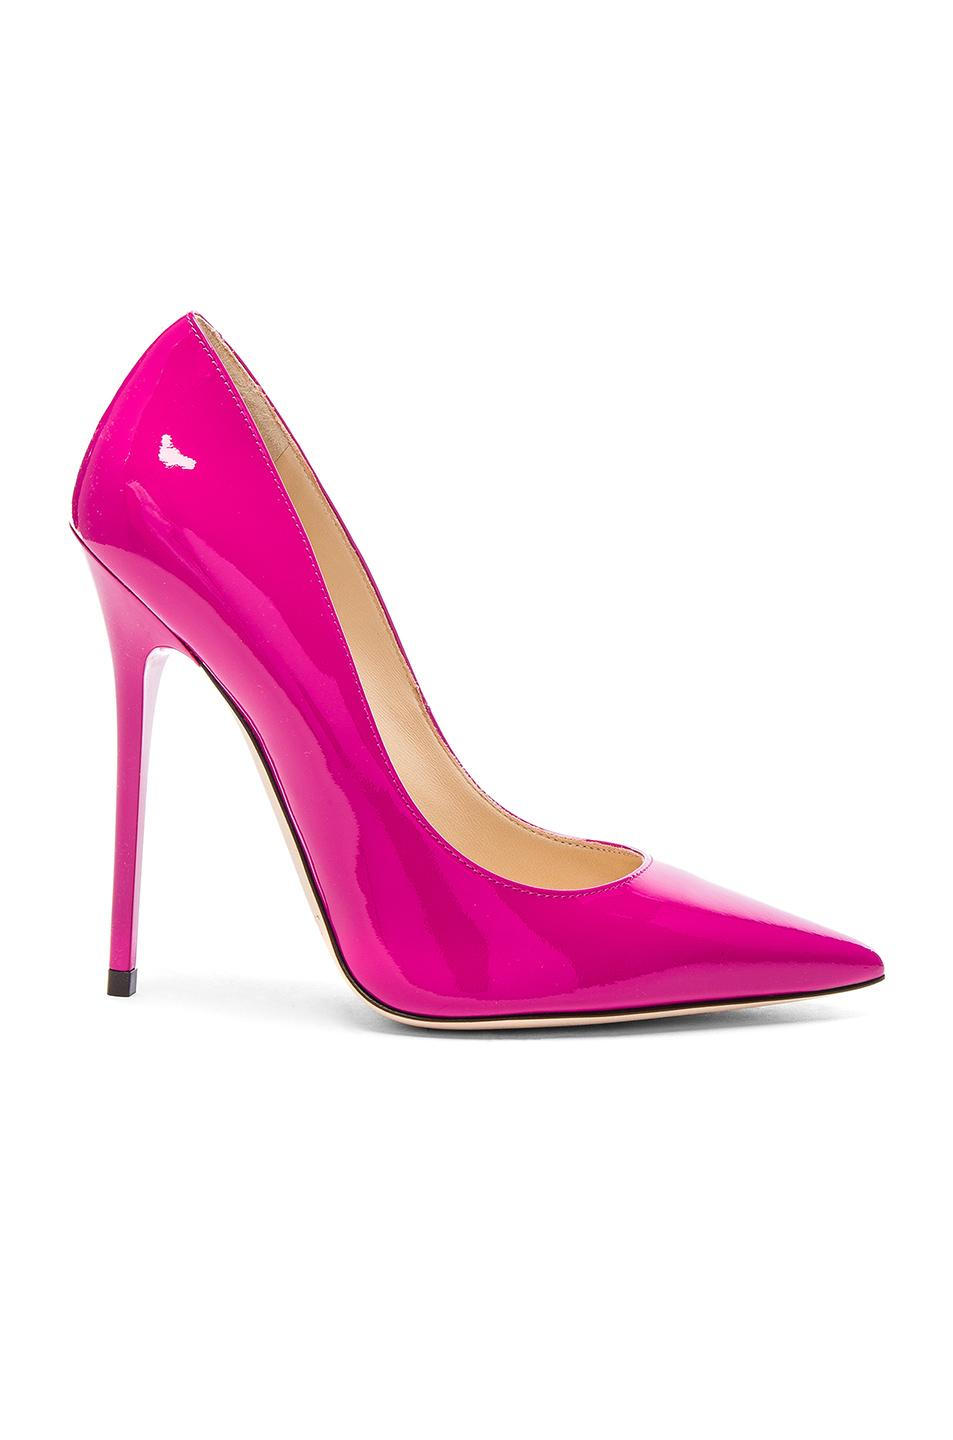 Jimmy Choo Patent Leather Anouk Heels in Pink - Lyst d9a5312852b